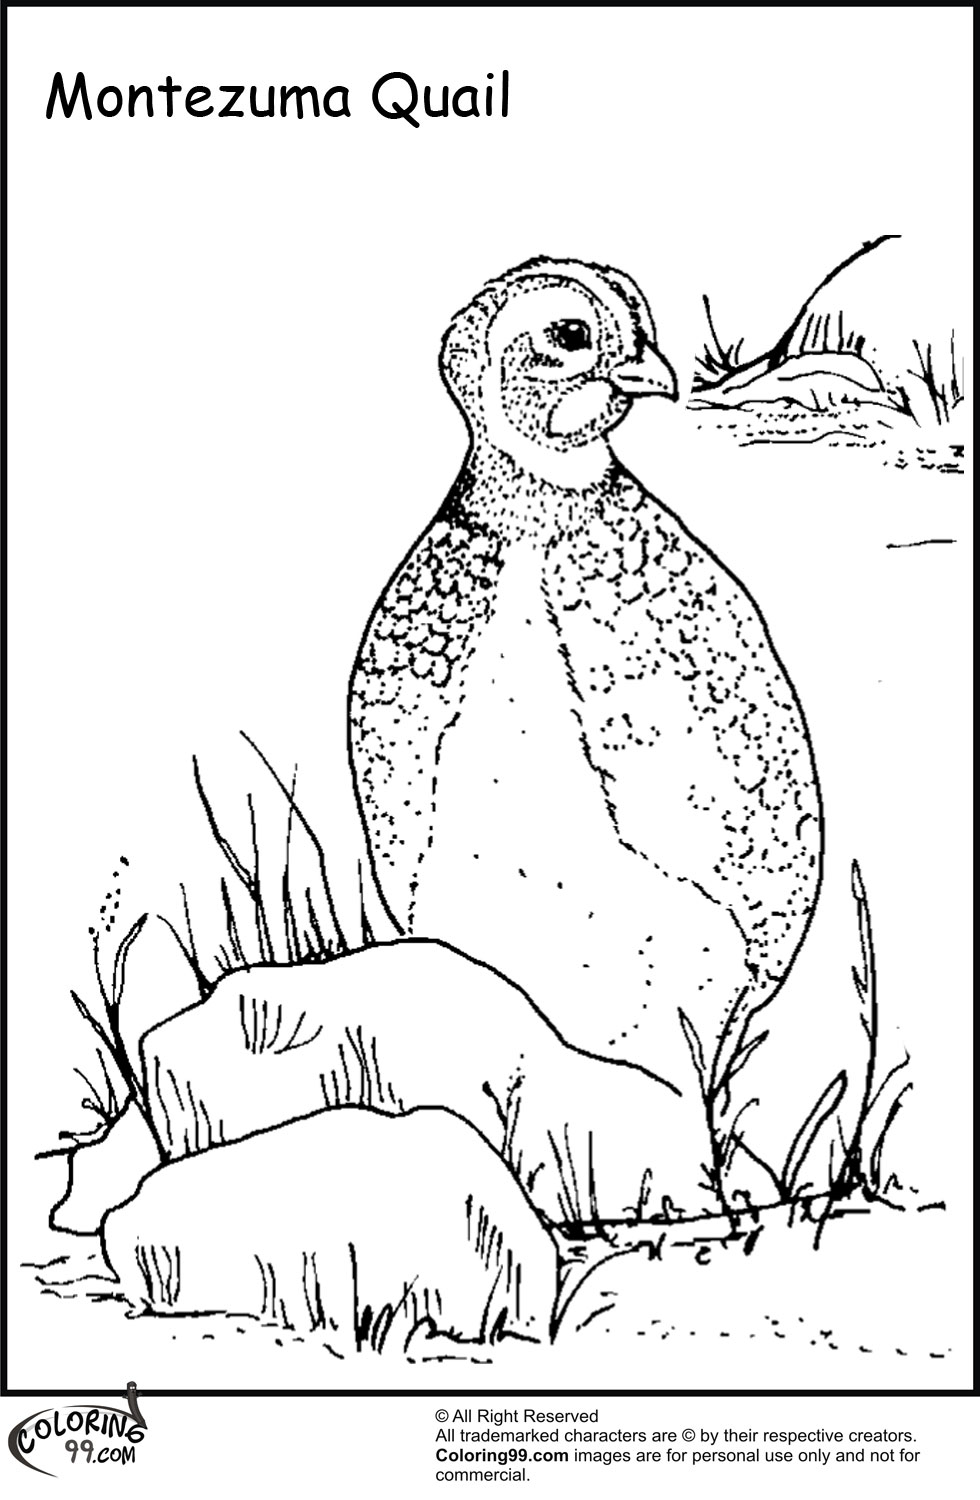 Quail Coloring Page Quail coloring pages